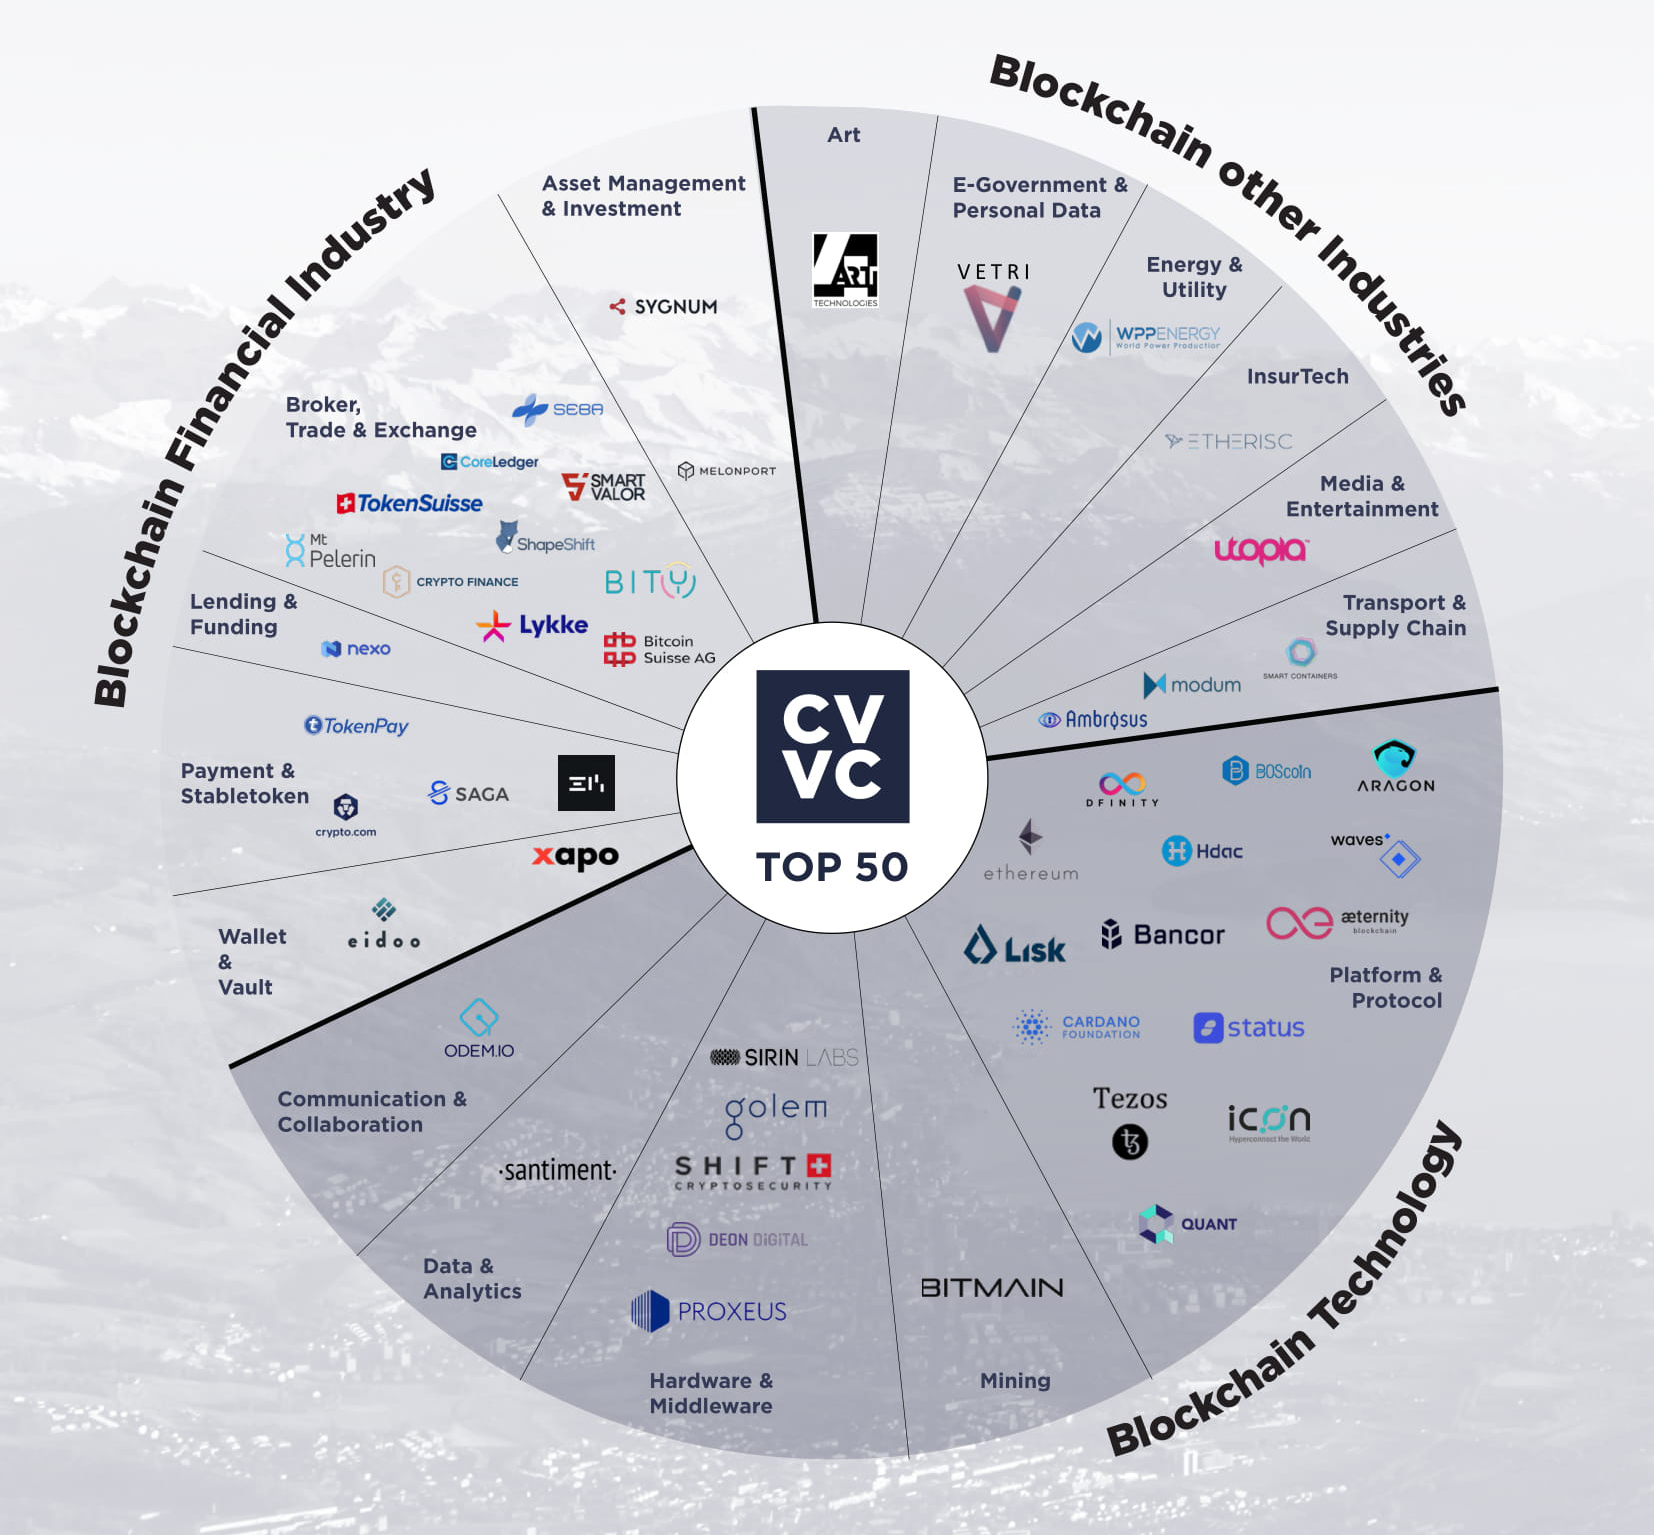 Crypto Valley Top 50 Shows Swiss Blockchain Industry